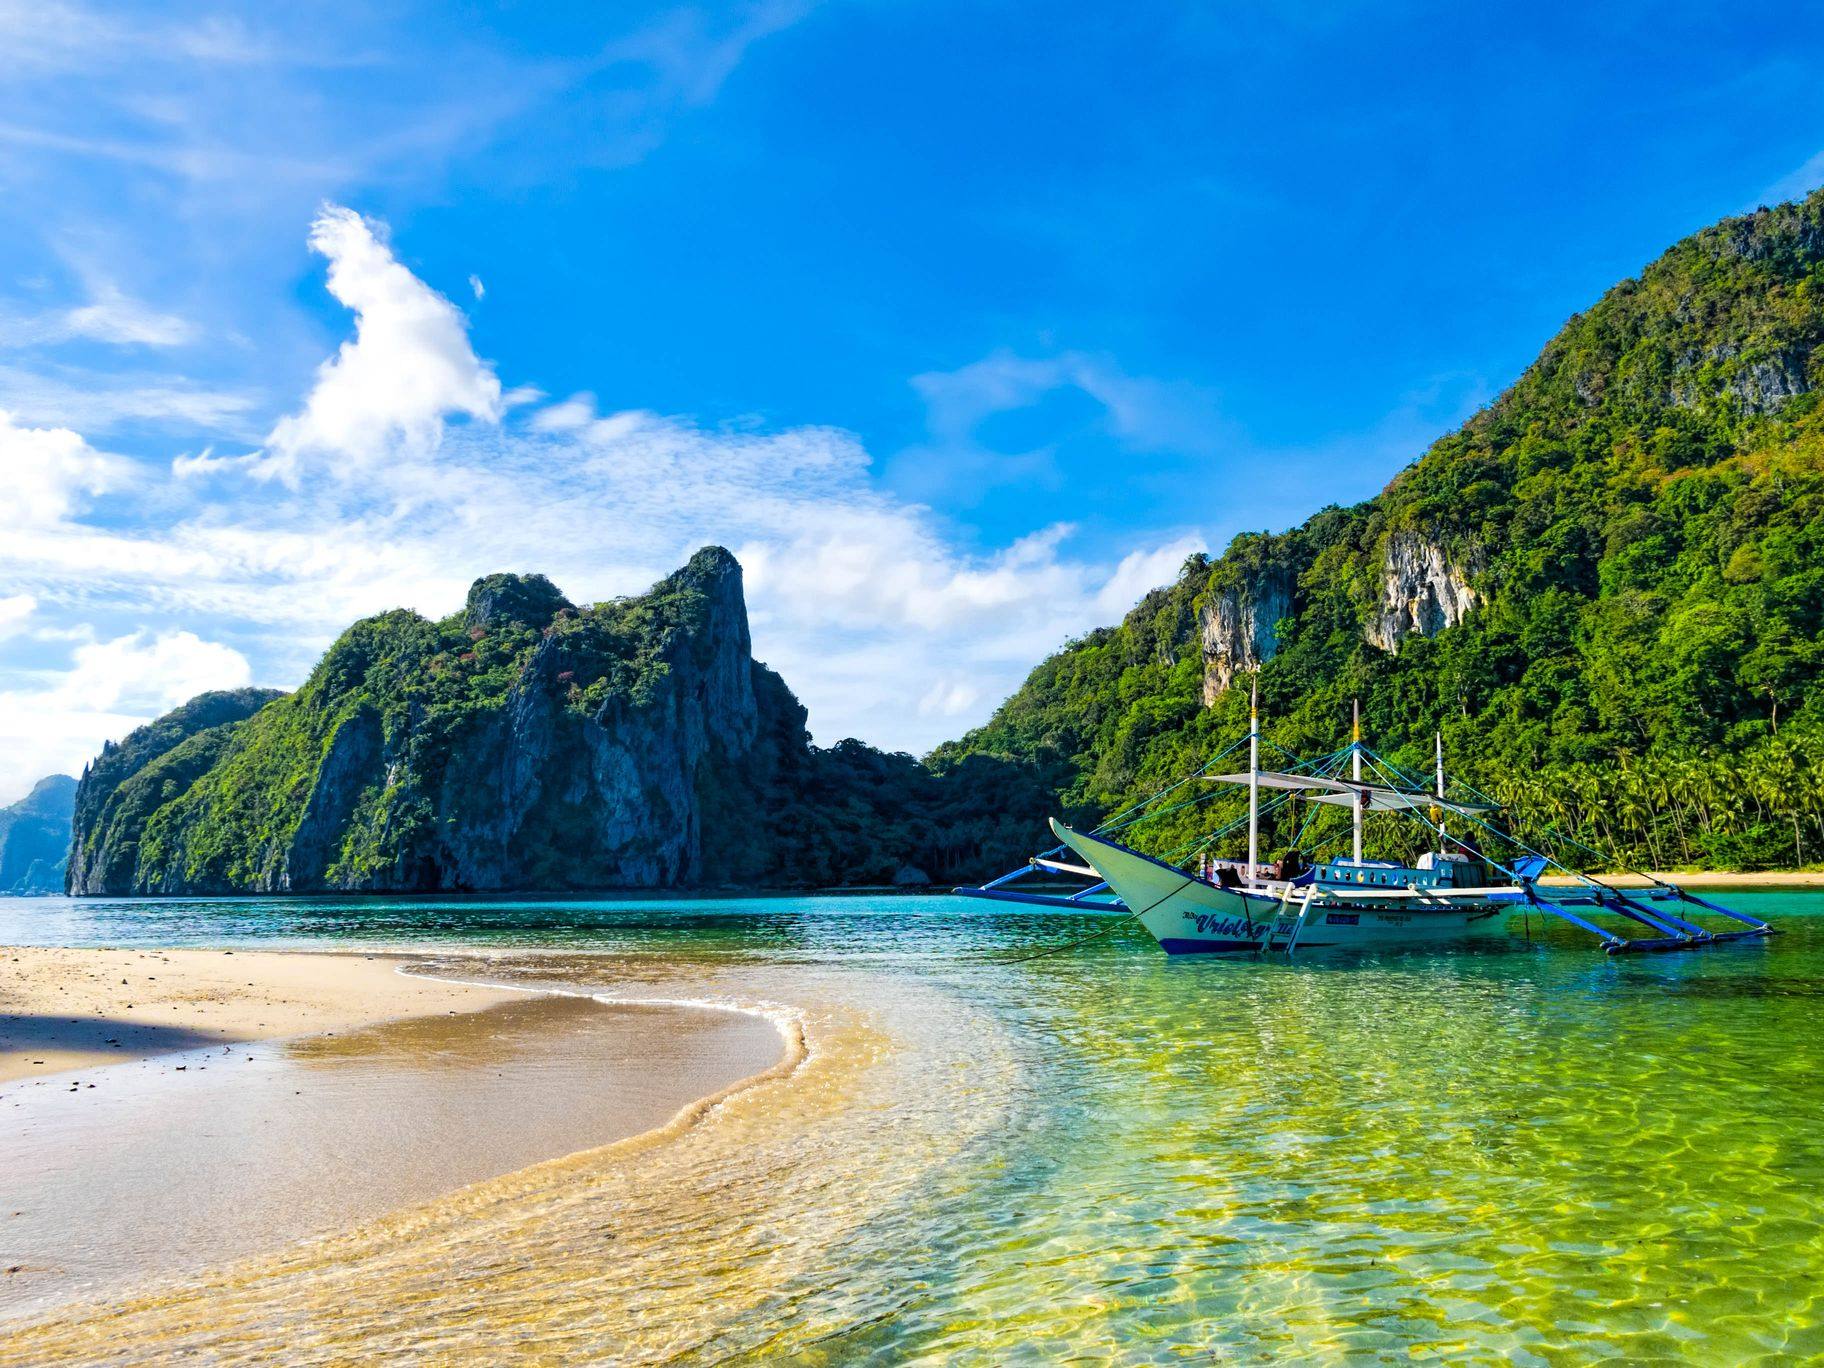 Boat moored close to shore fronting crystalline waters with limestone cliffs clad with vegetation in the distance in El Nido, Palawan, Philippines